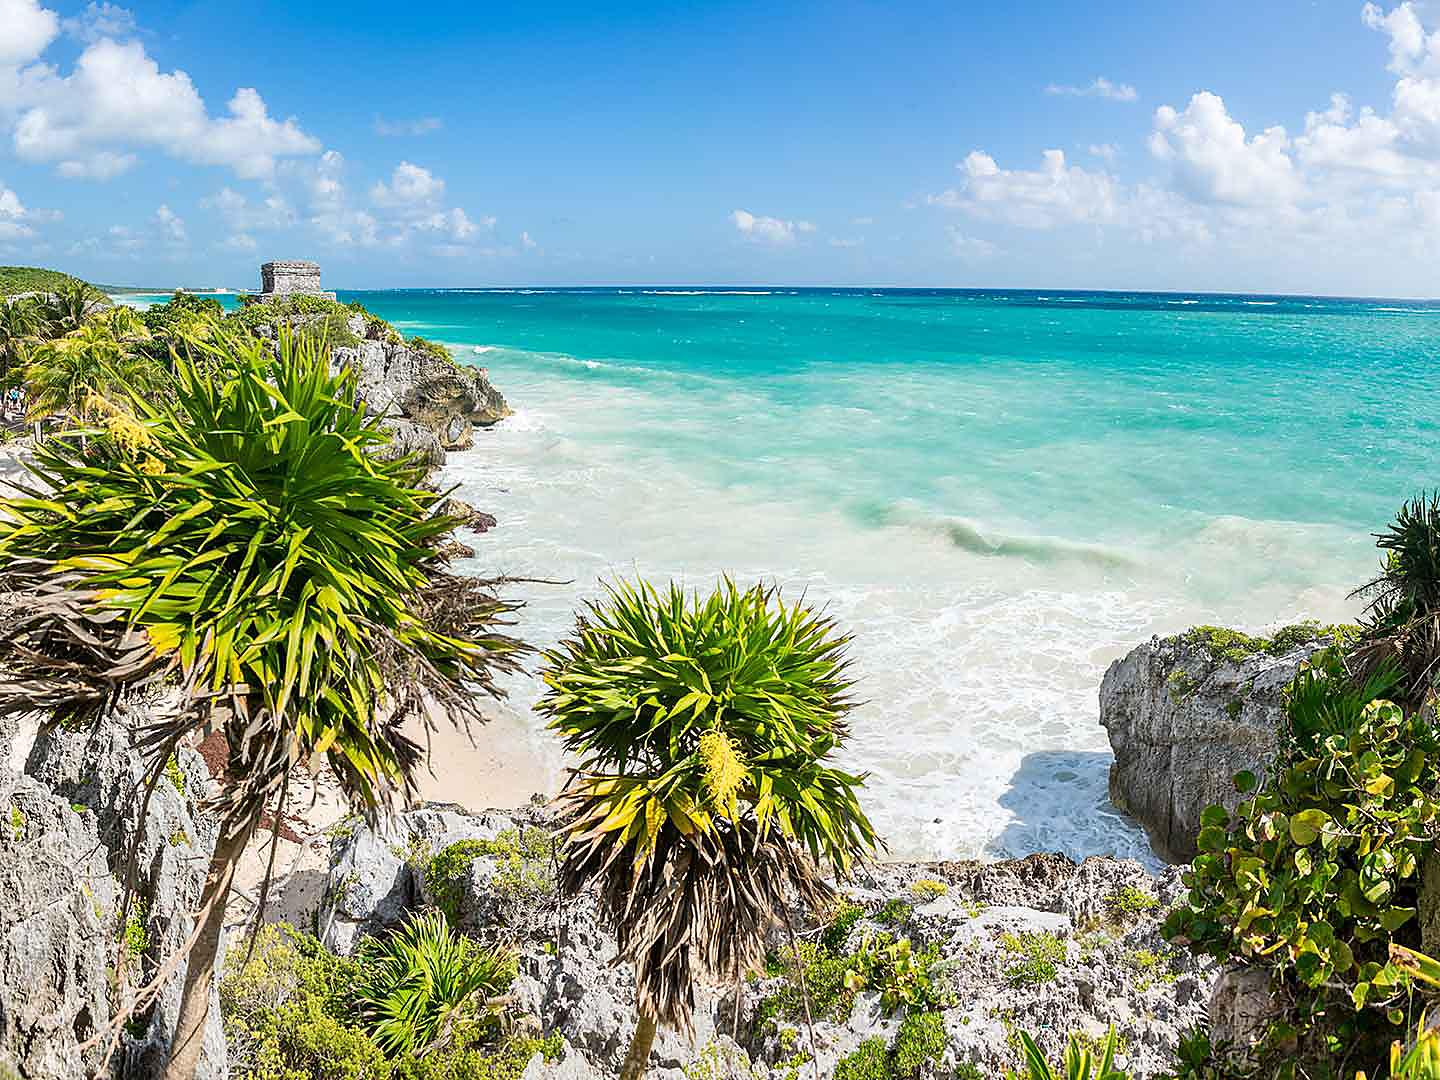 Cozumel, Mexico Tulum God Of Wind Temple Ruins Panoramic